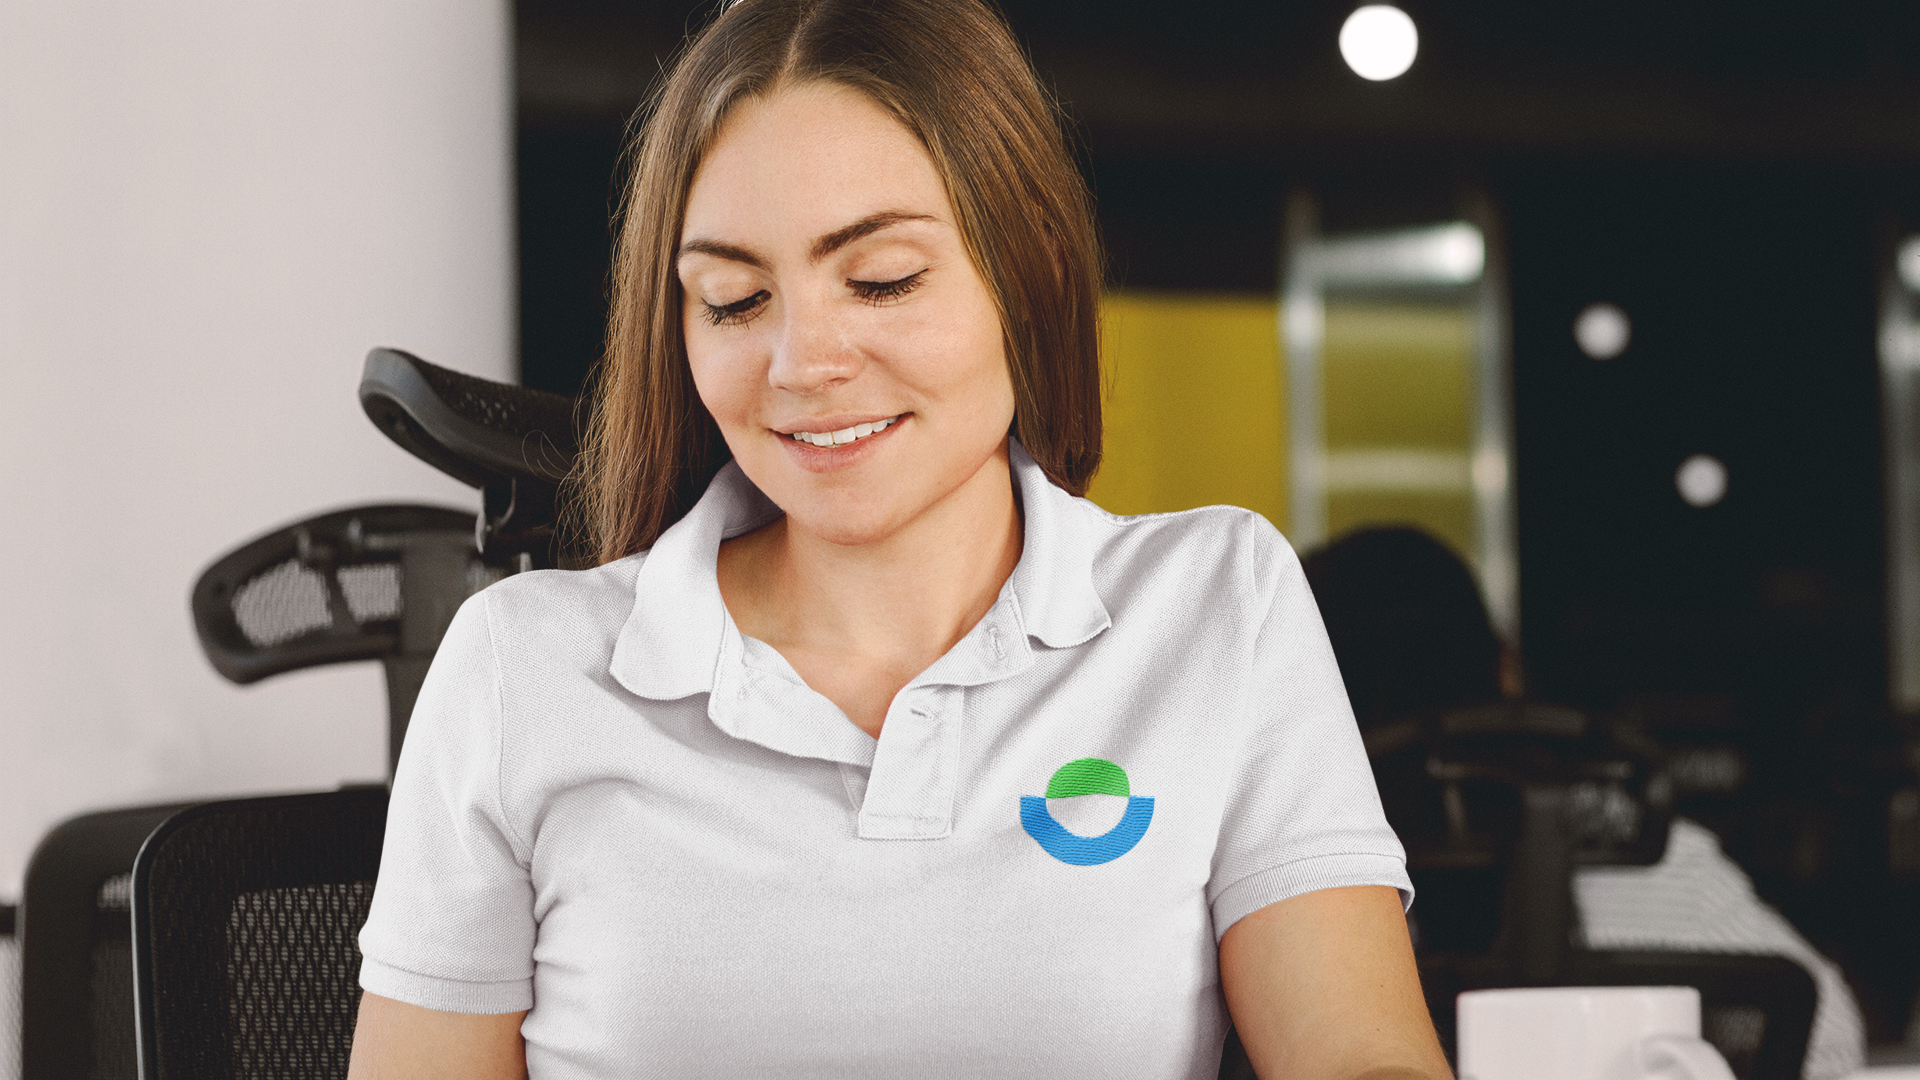 branded polo shirt from a branding package